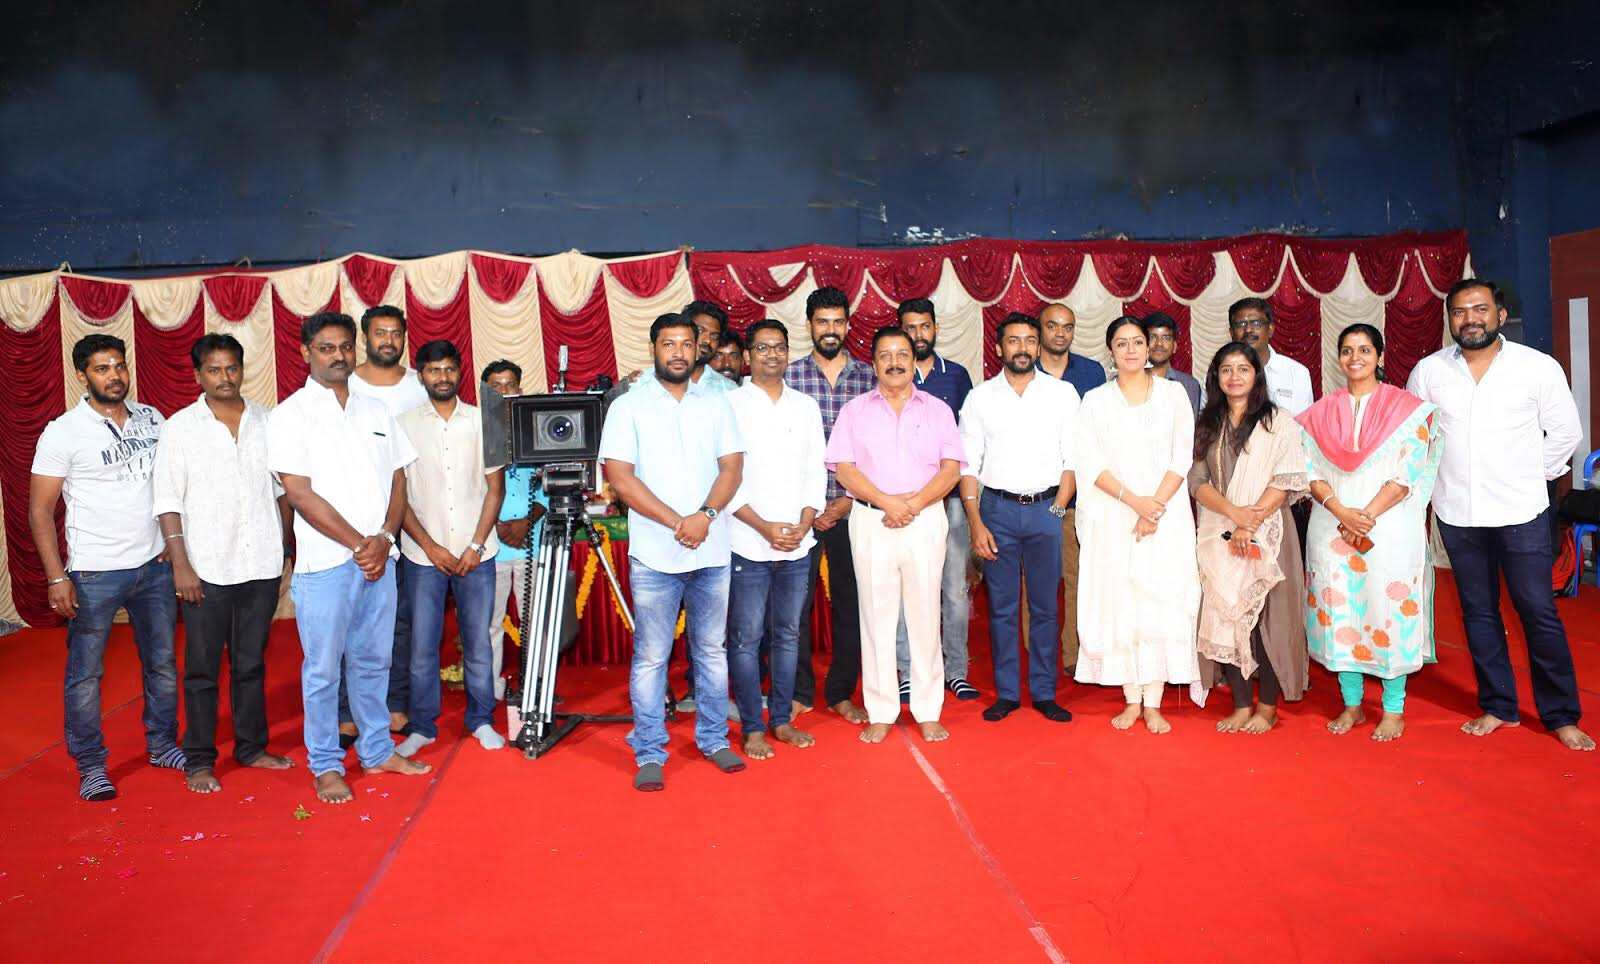 Actress Jyothika Dream Warrior Pictures 21st Film Launched